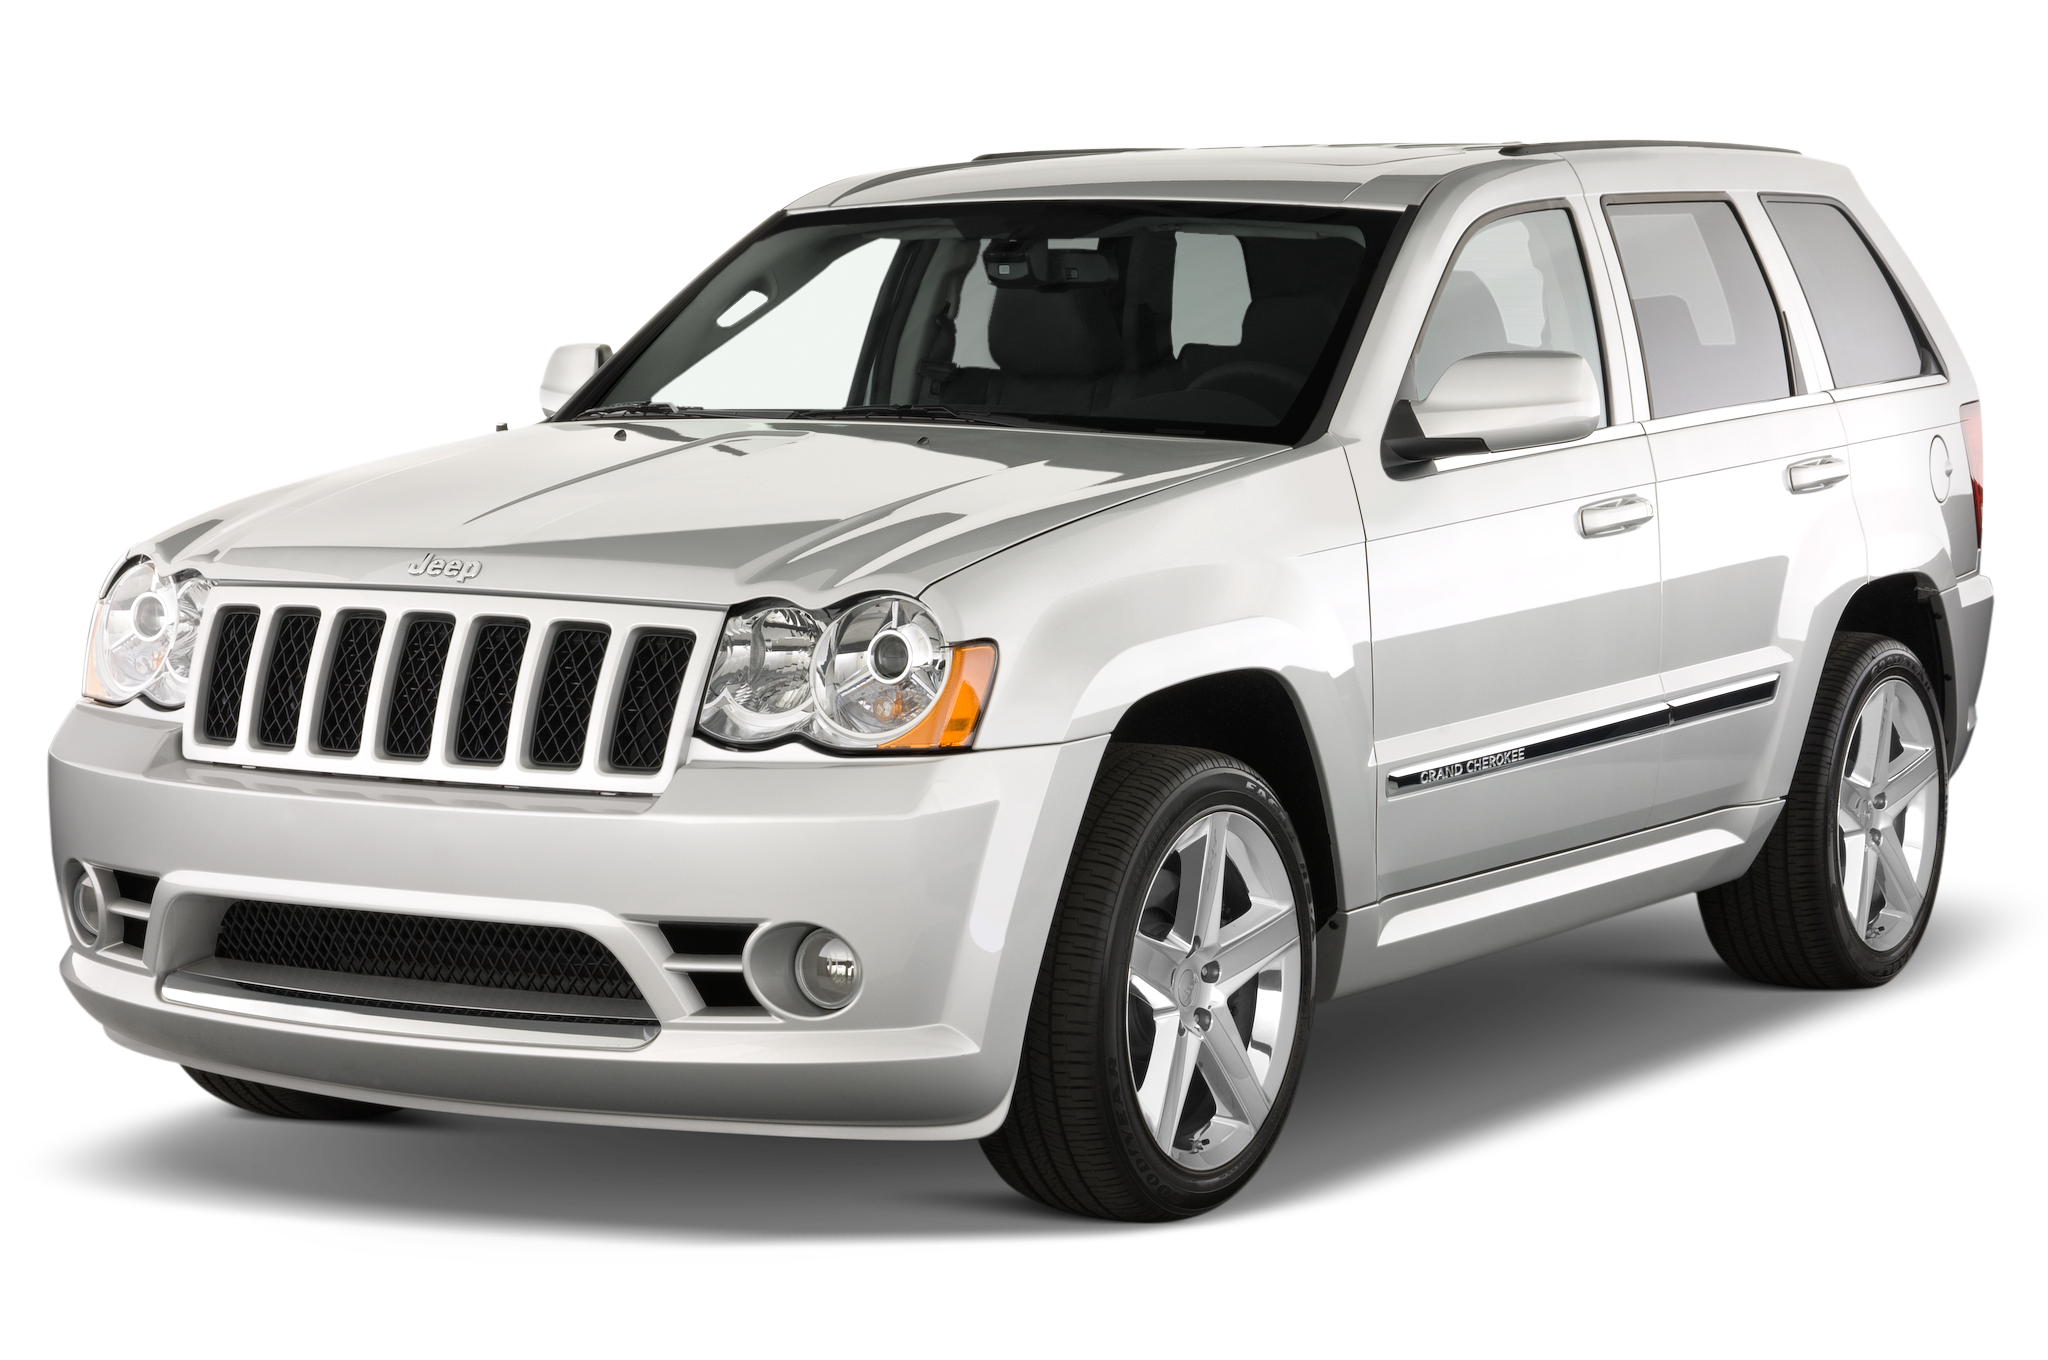 2010 jeep grand cherokee reviews and rating motortrend2010 jeep grand cherokee